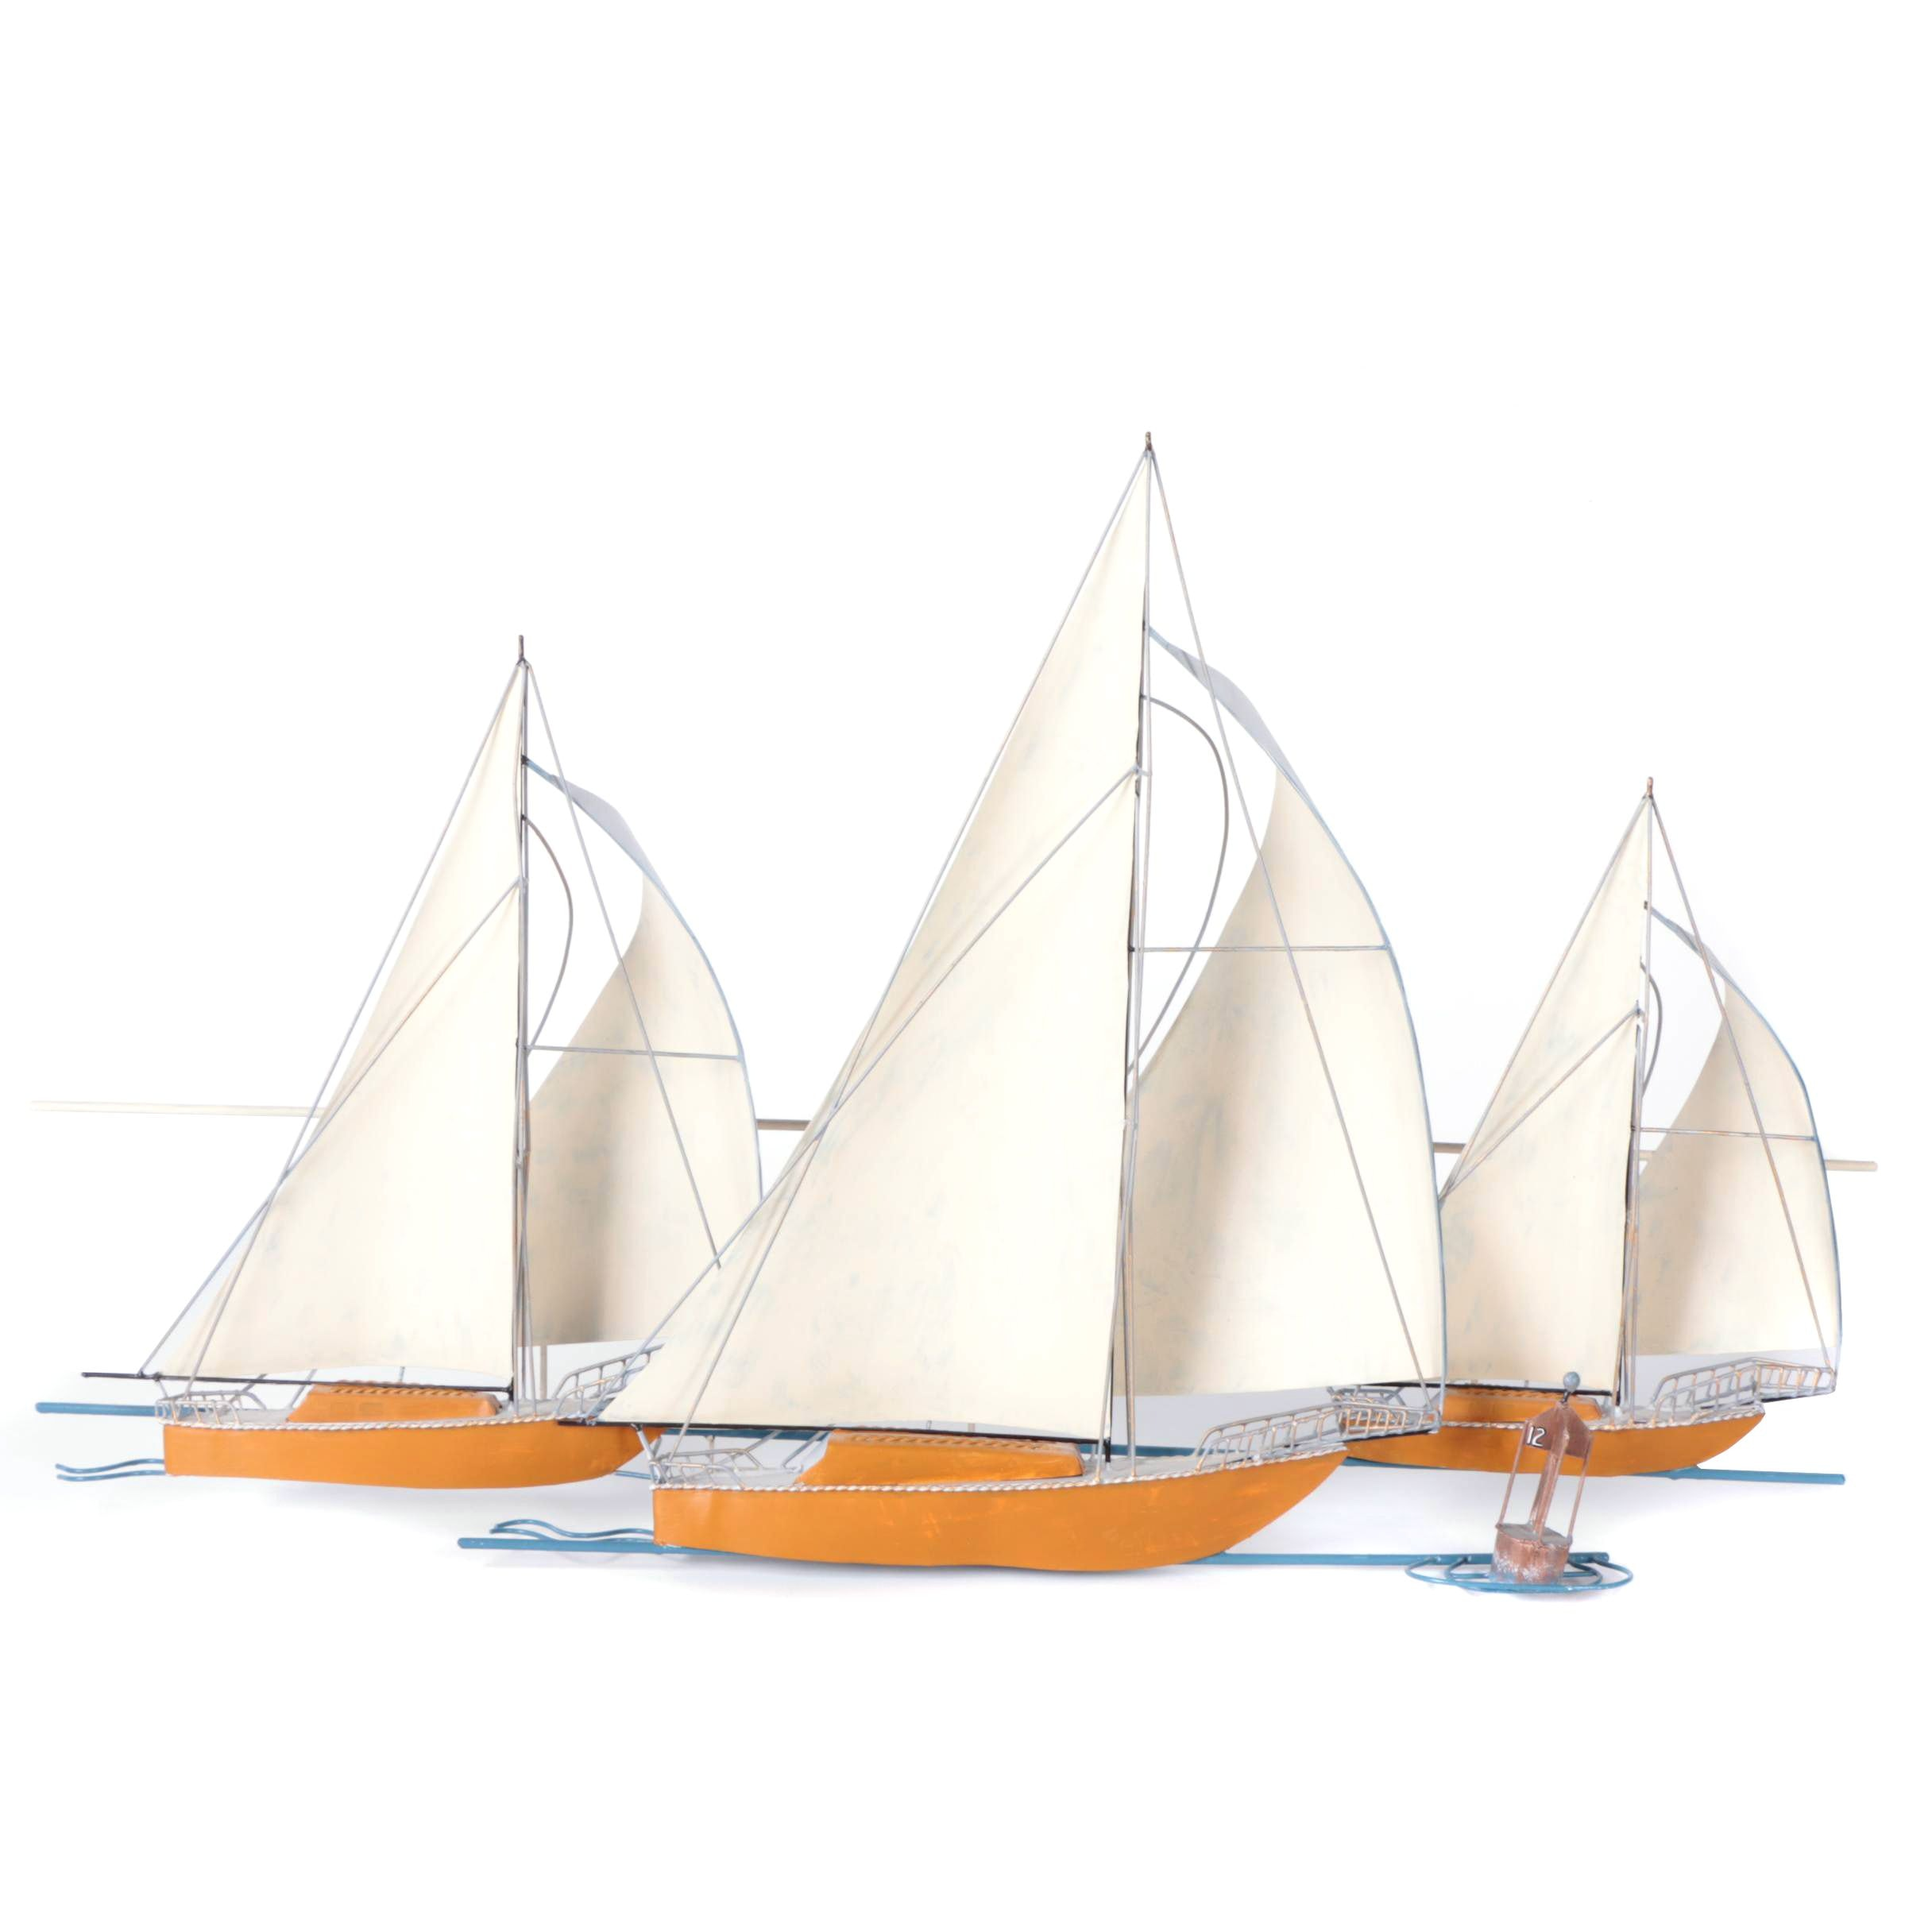 """Nmd """"At The Races"""" Metal Sculpture of Sailboats and Dinghy"""